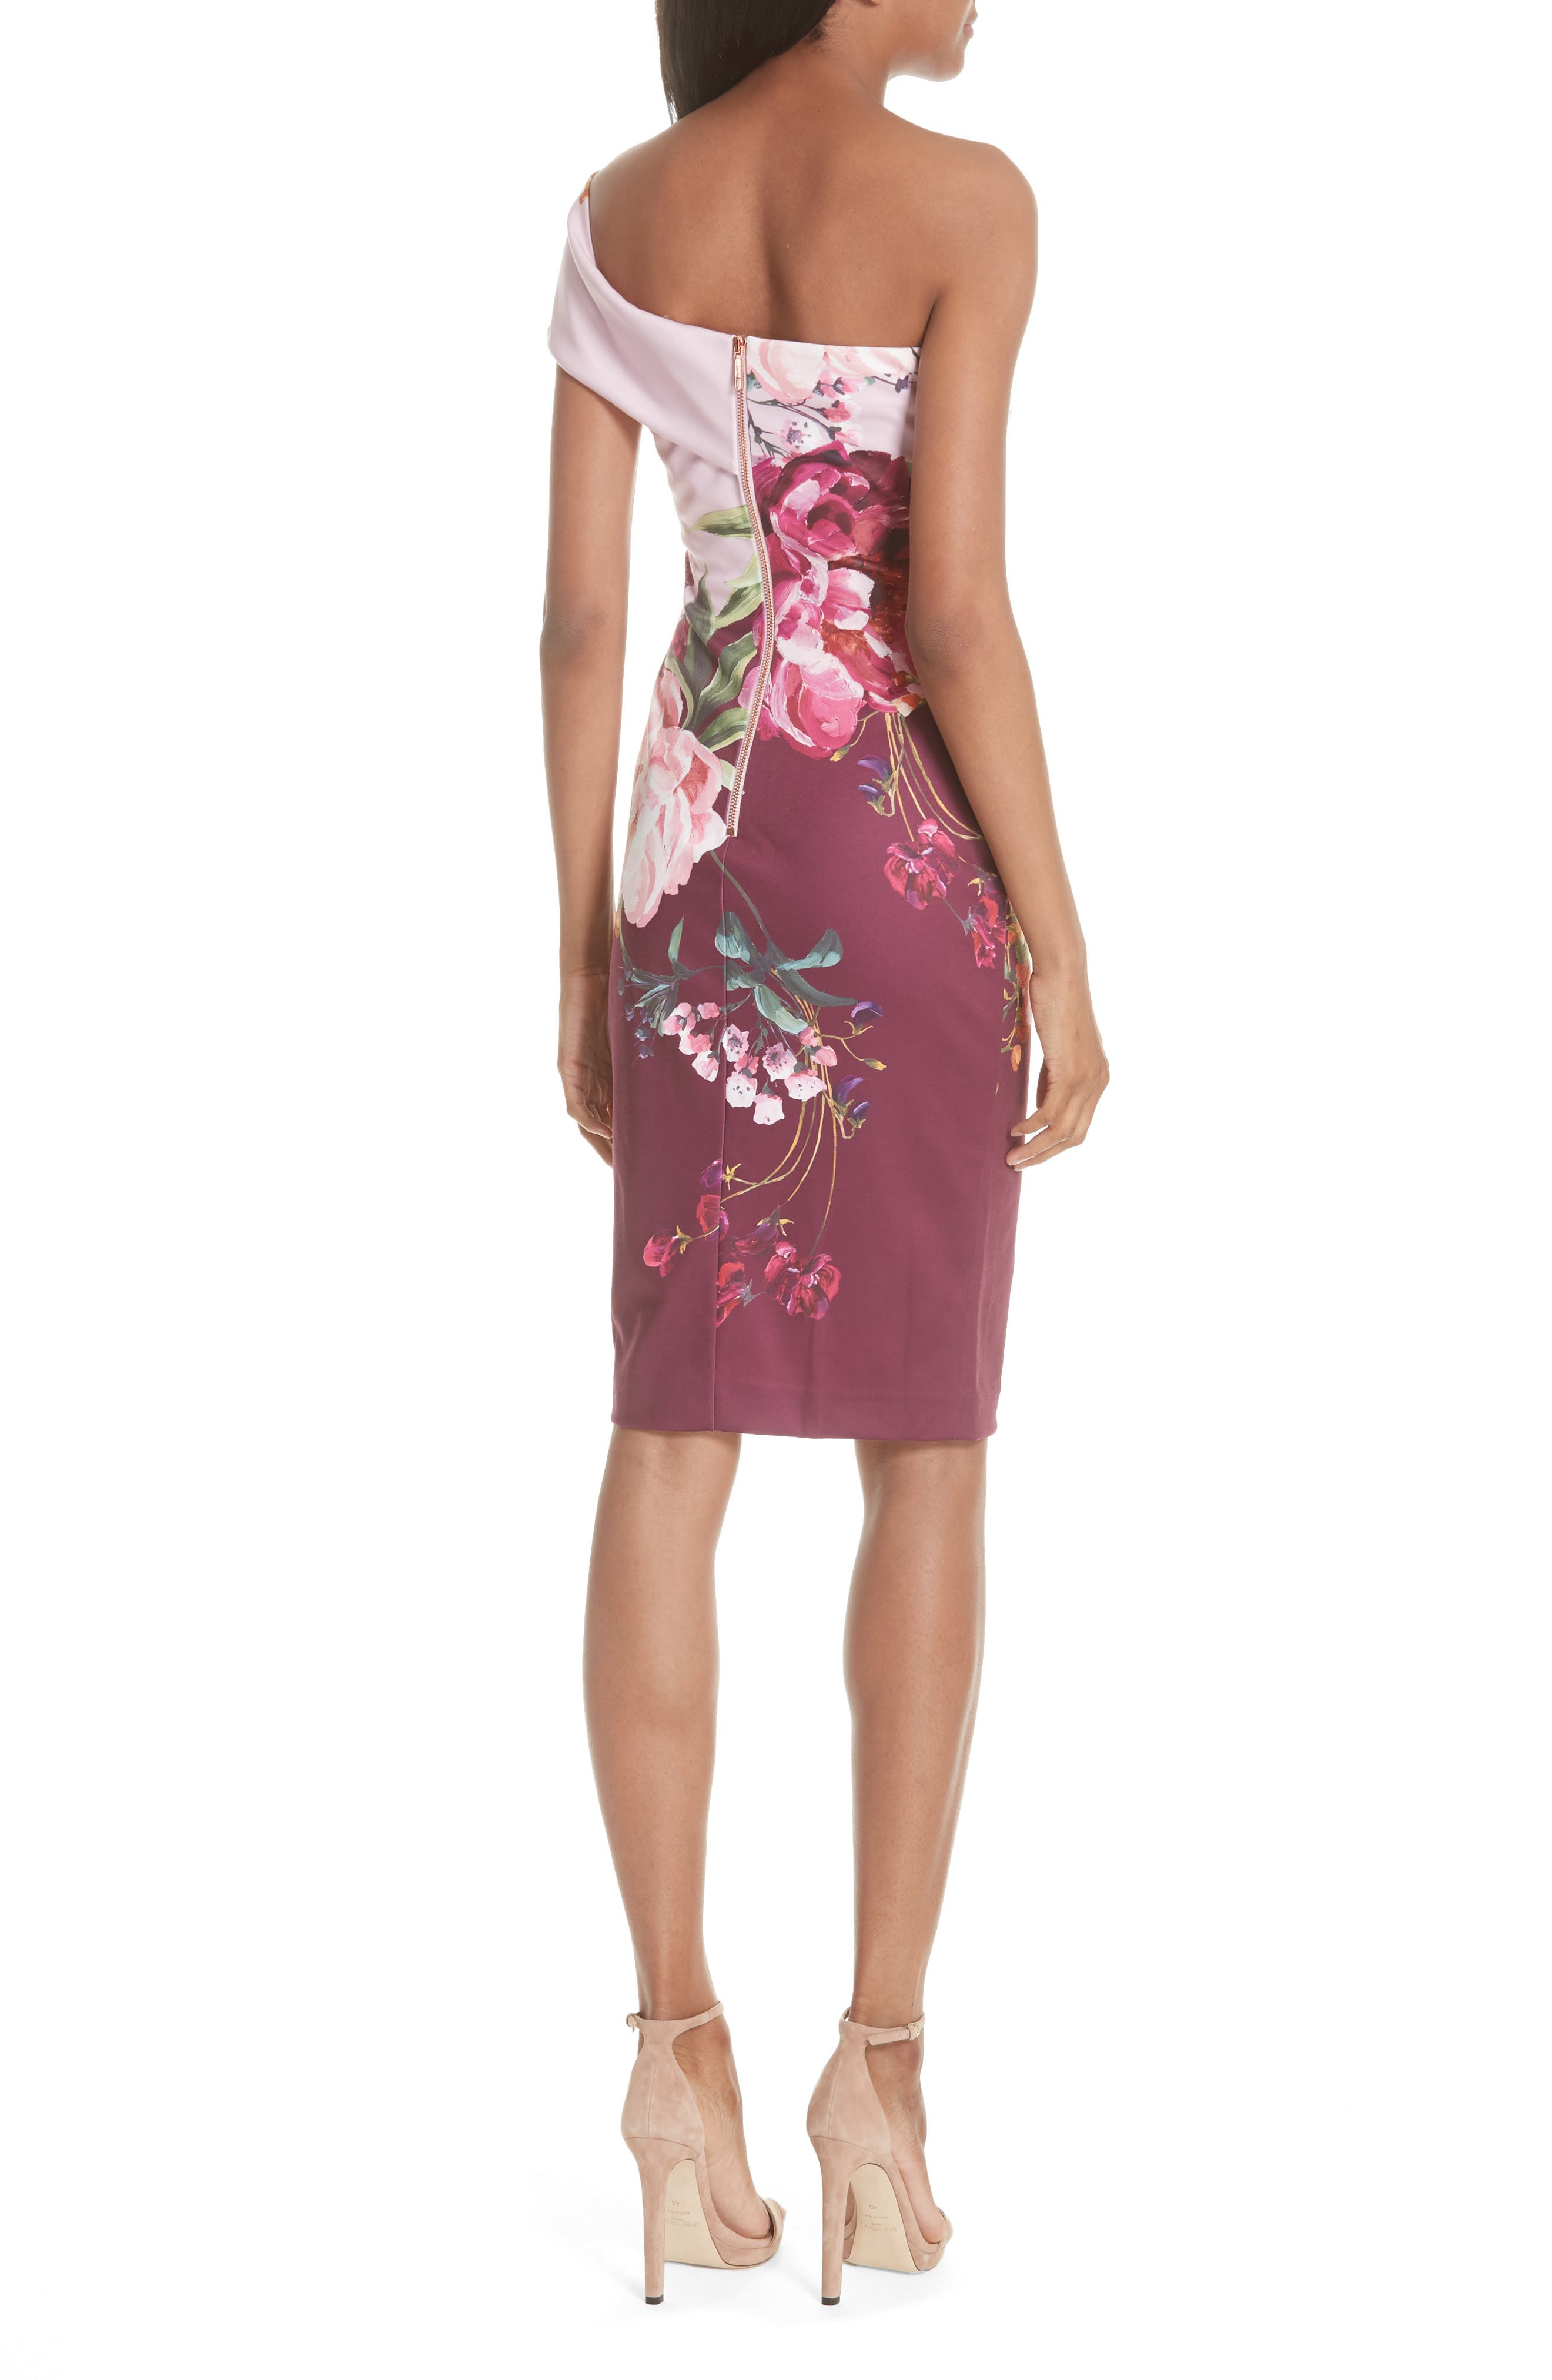 Irlina Serenity Sheath Dress,                             Alternate thumbnail 2, color,                             931